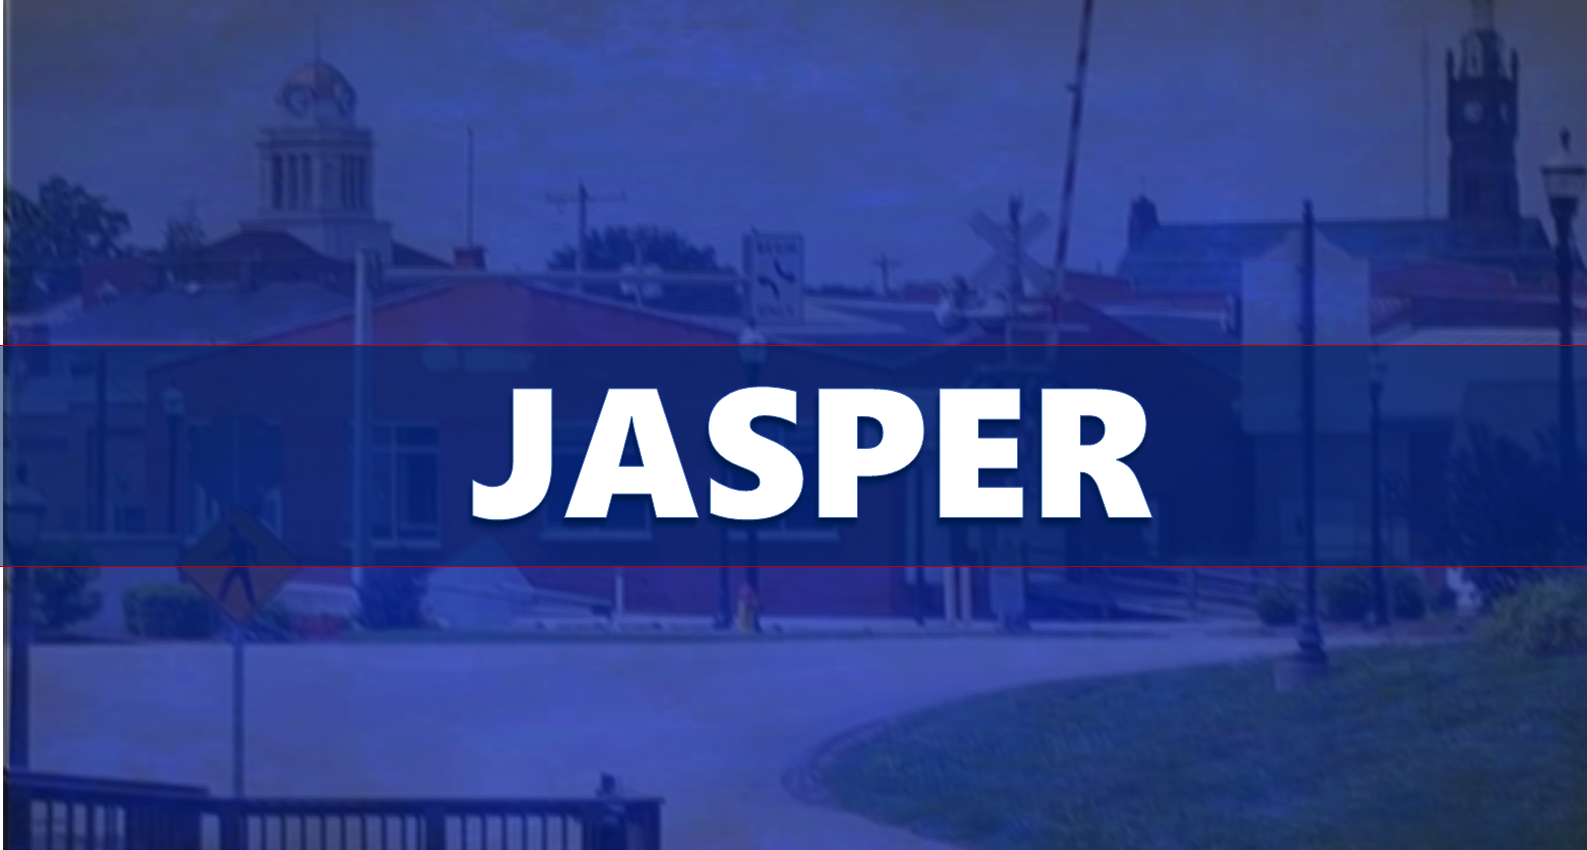 Serice Steftenagel Appointed to Jasper Economic Development Commission